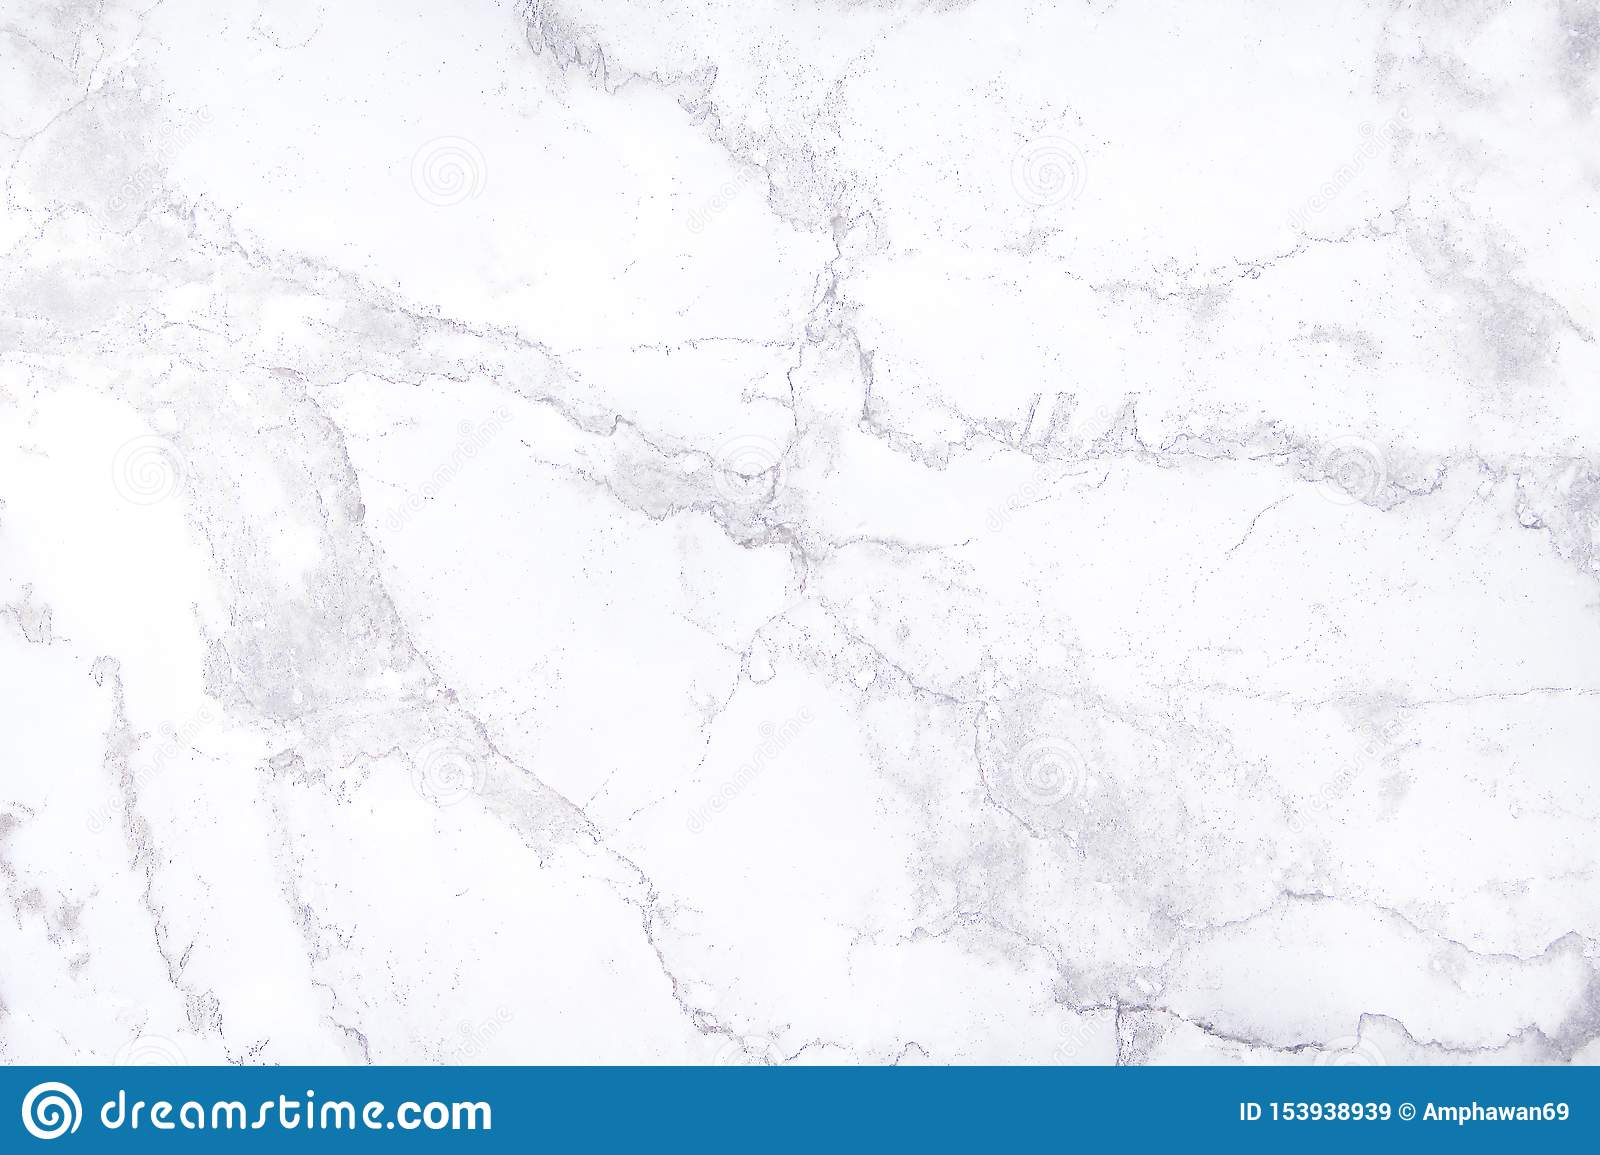 White Marble Texture Seamless Patterns Abstract Nature Background Stock Image Image Of Nature Concrete 153938939